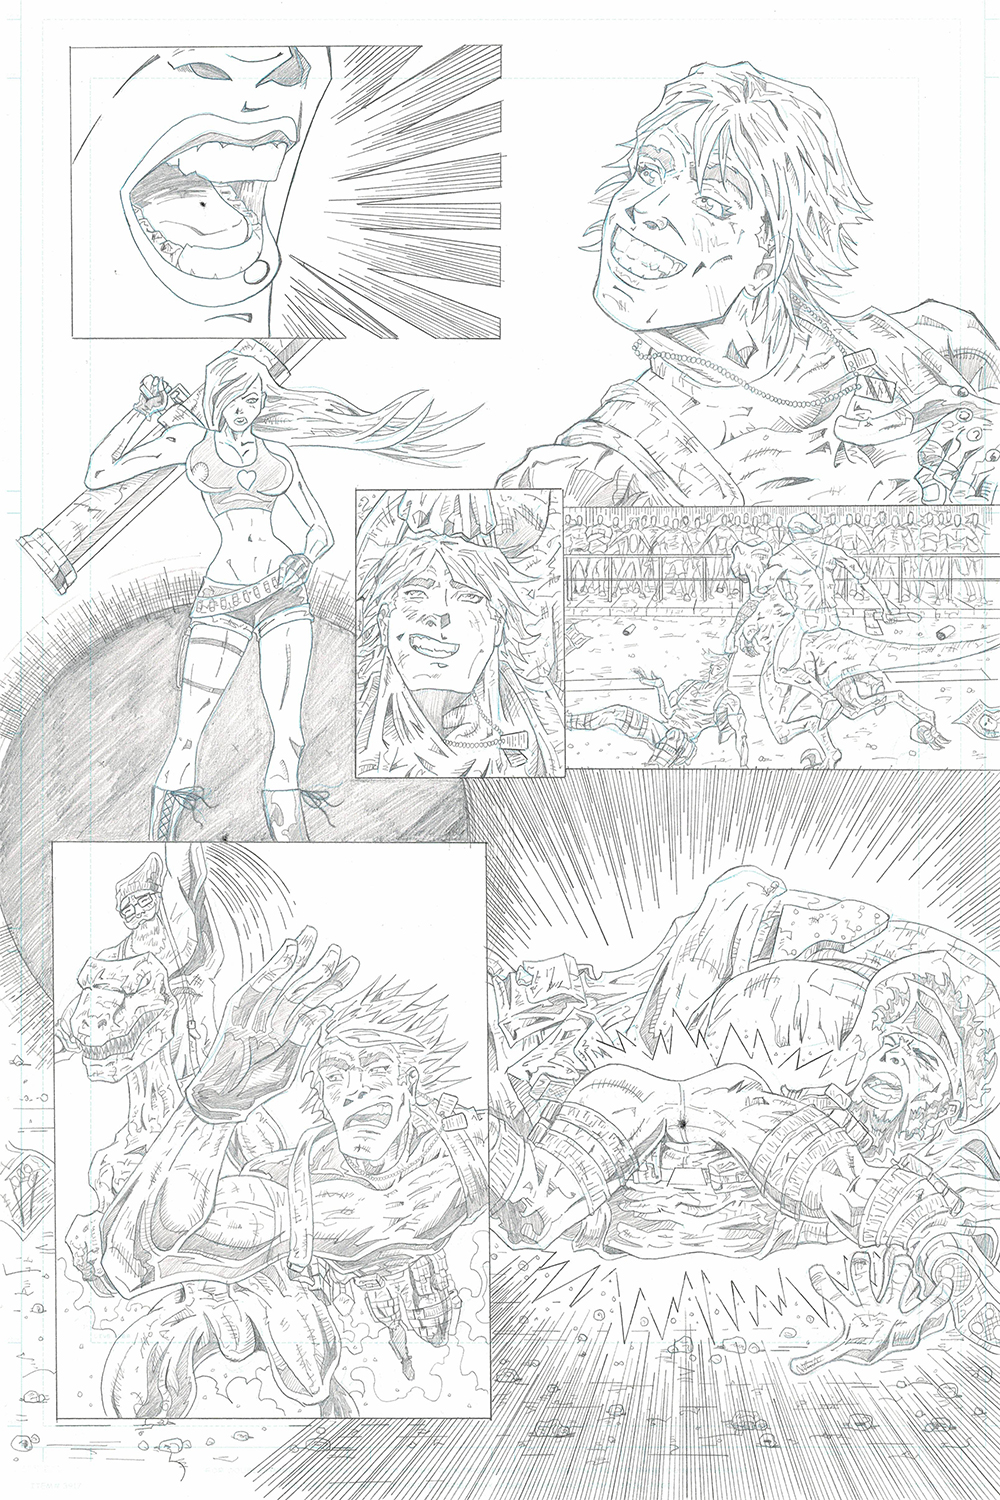 MISSION 010: PAGE 16 PENCIL